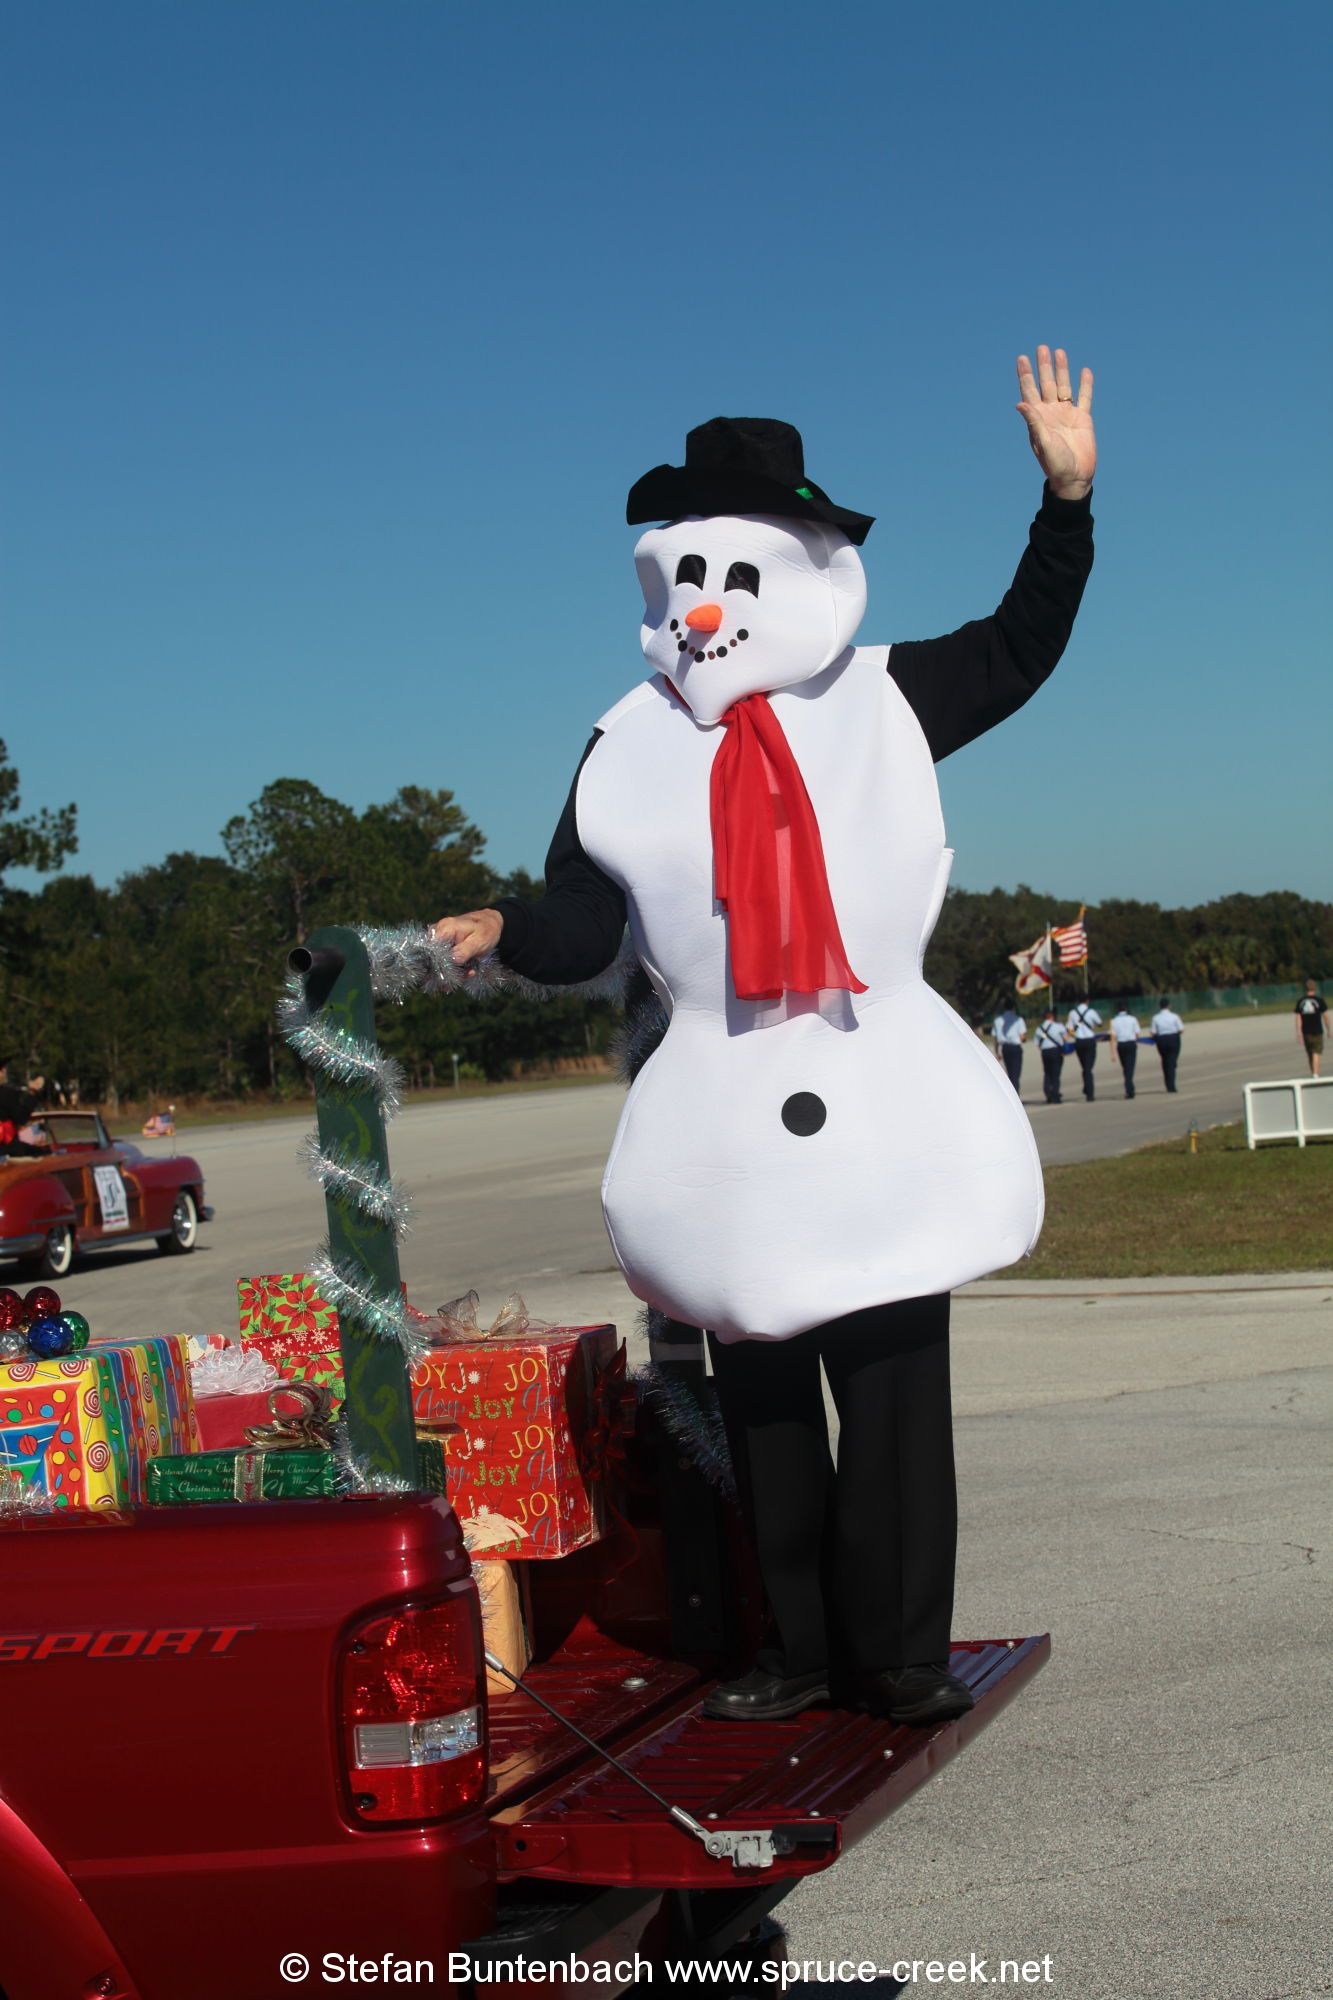 Spruce-Creek-Toyparade-2015- IMG_1468